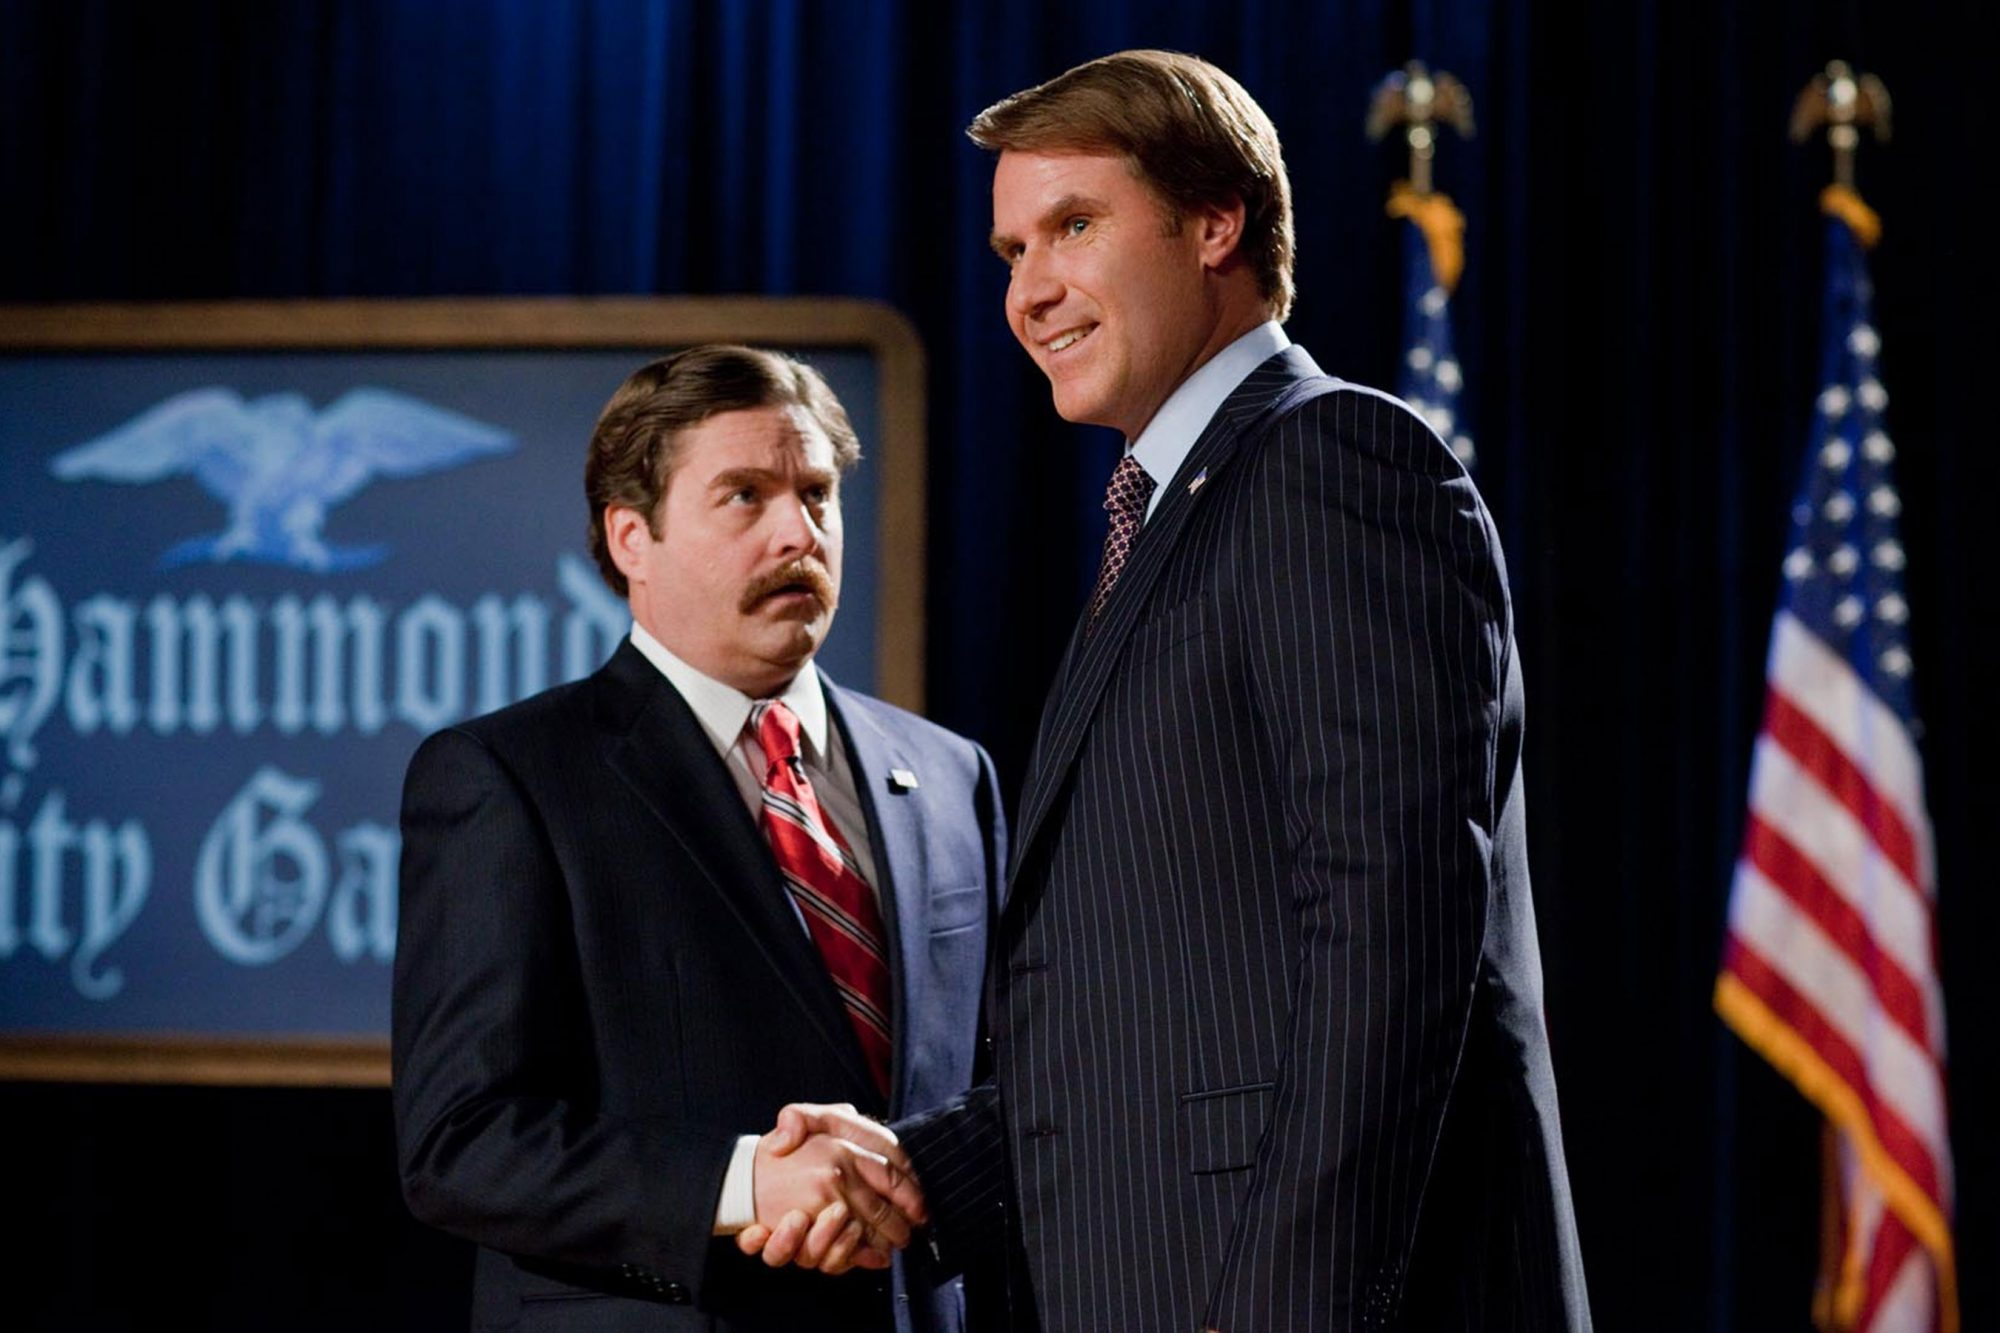 13. Will Ferrell and Zach Galifianakis in The Campaign (2012)